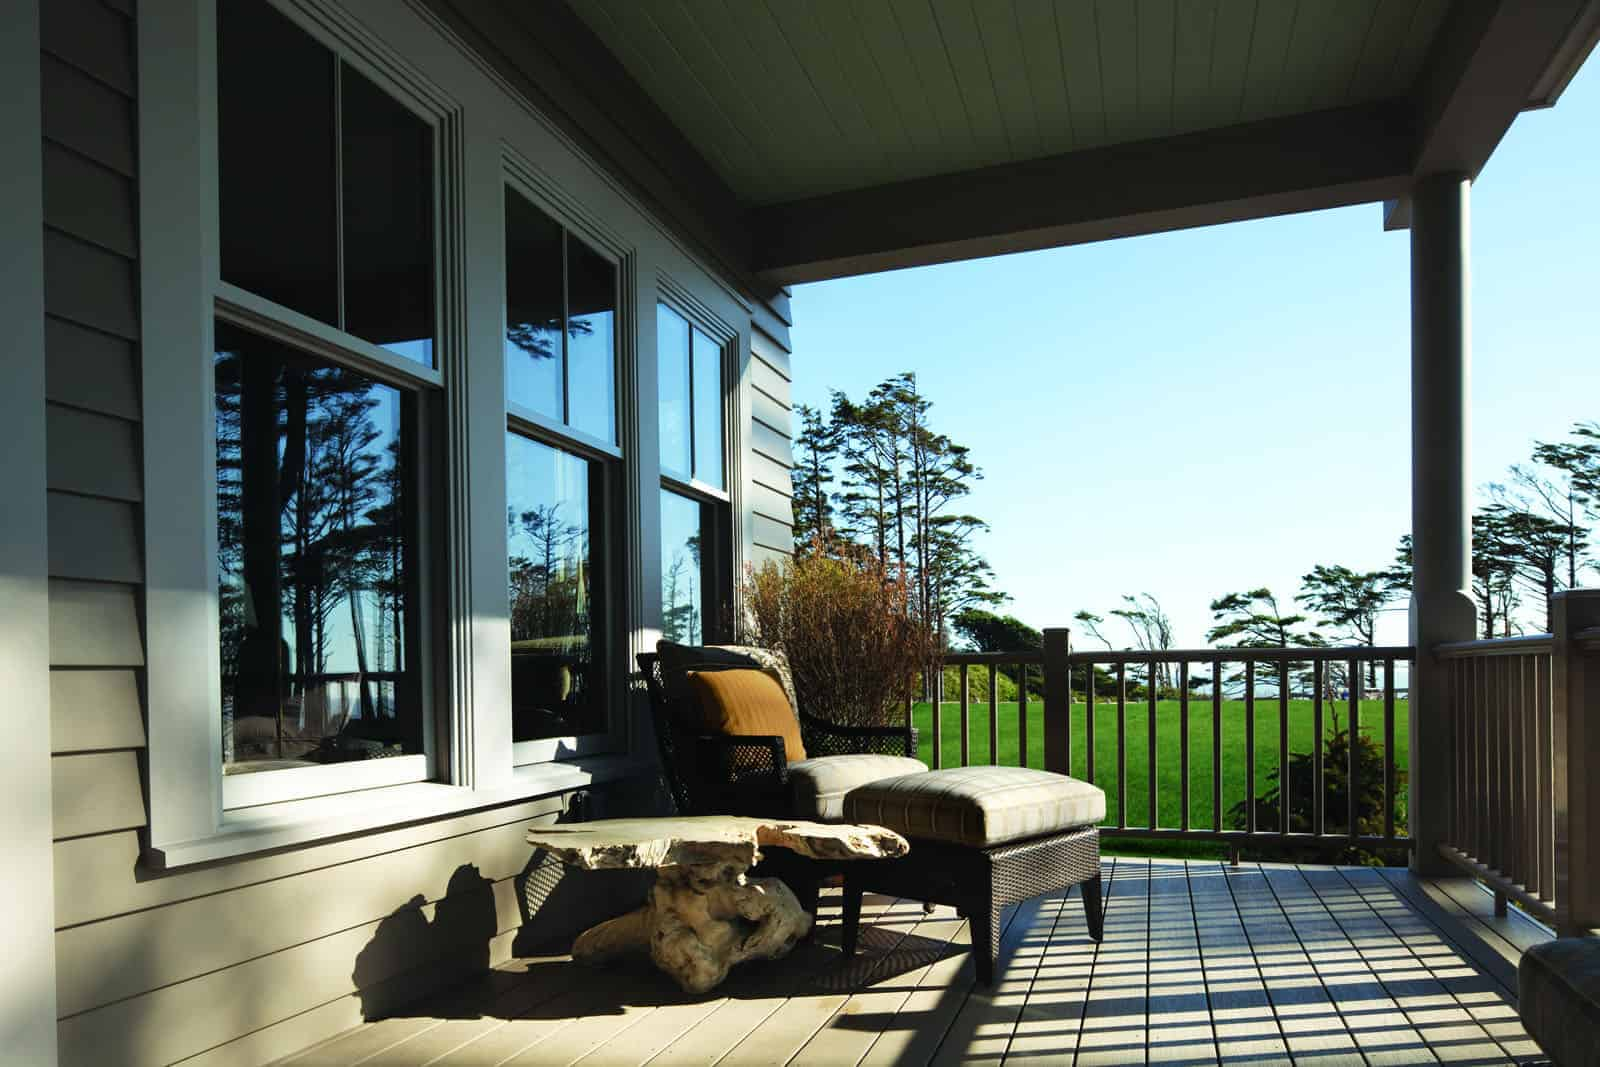 Wood windows look out to wraparound porch